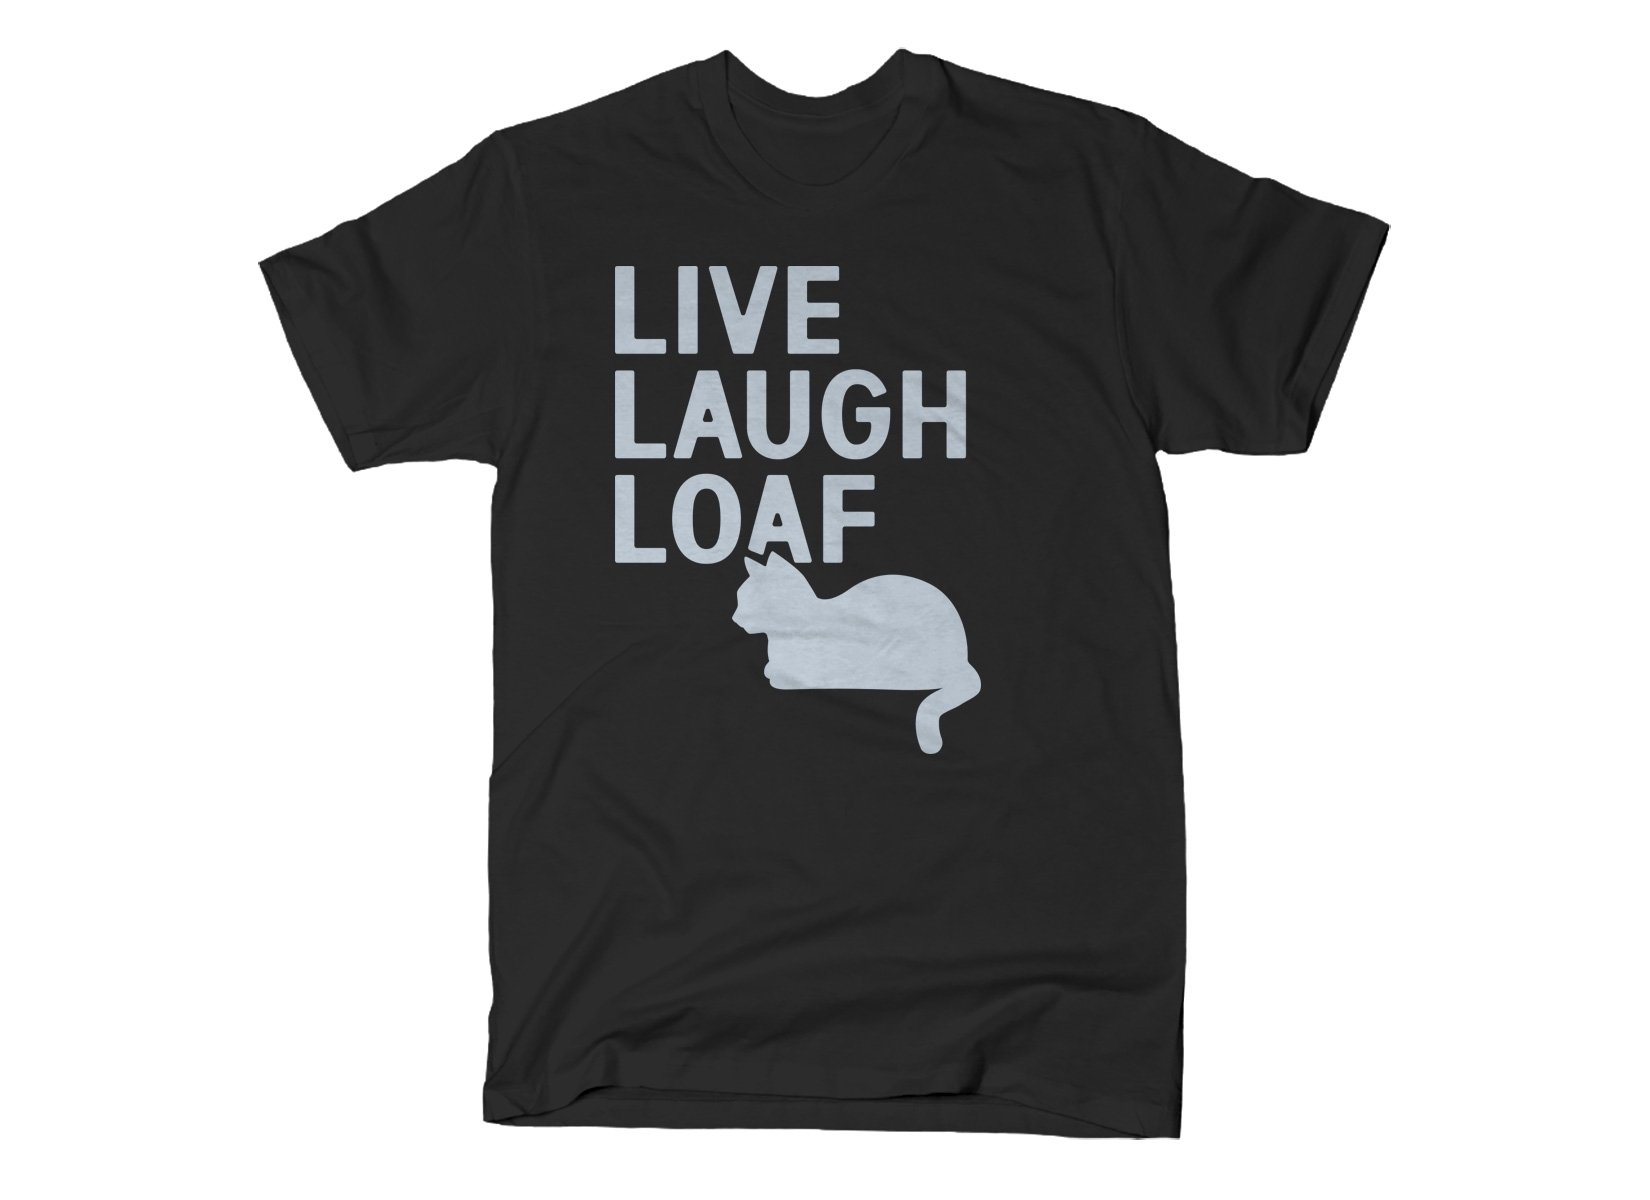 Live Laugh Loaf on Mens T-Shirt